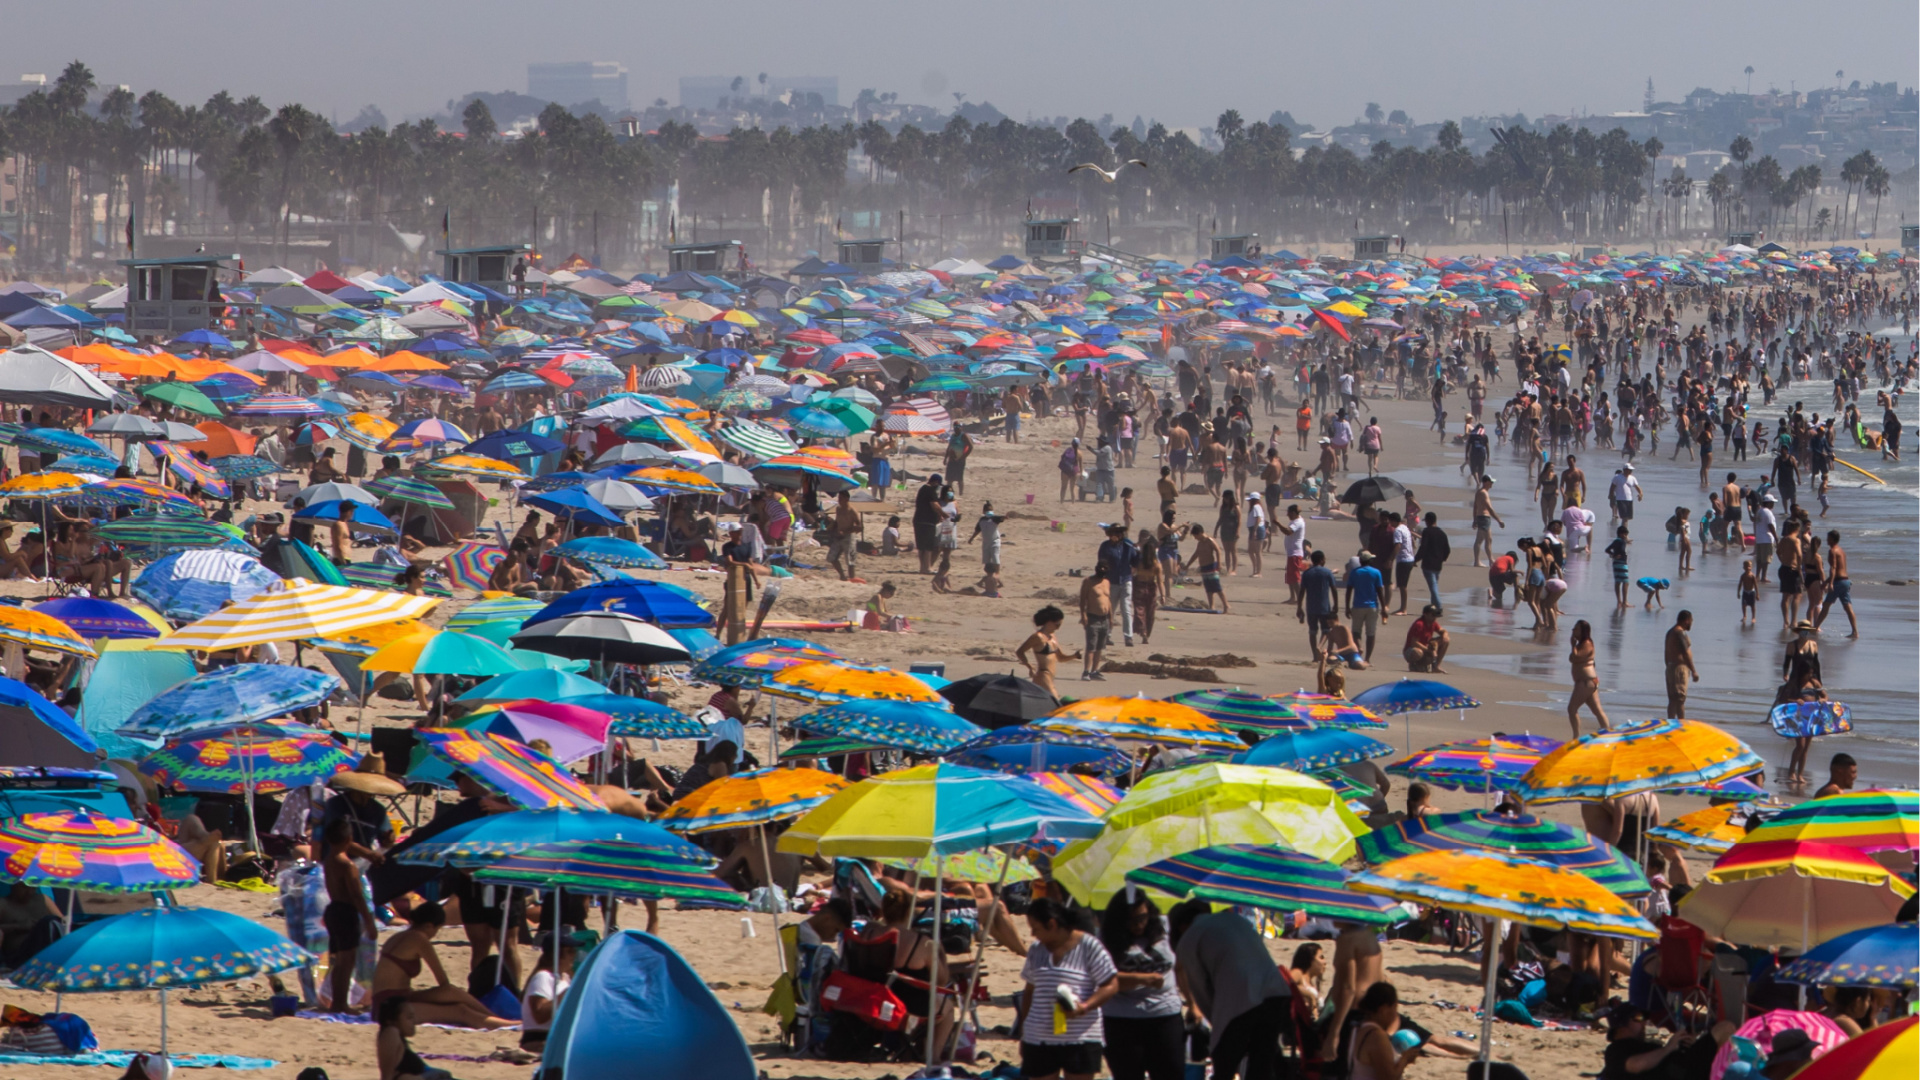 People gather on the beach on the second day of the Labor Day weekend amid a heatwave in Santa Monica on Sept. 6, 2020. (APU GOMES/AFP via Getty Images)